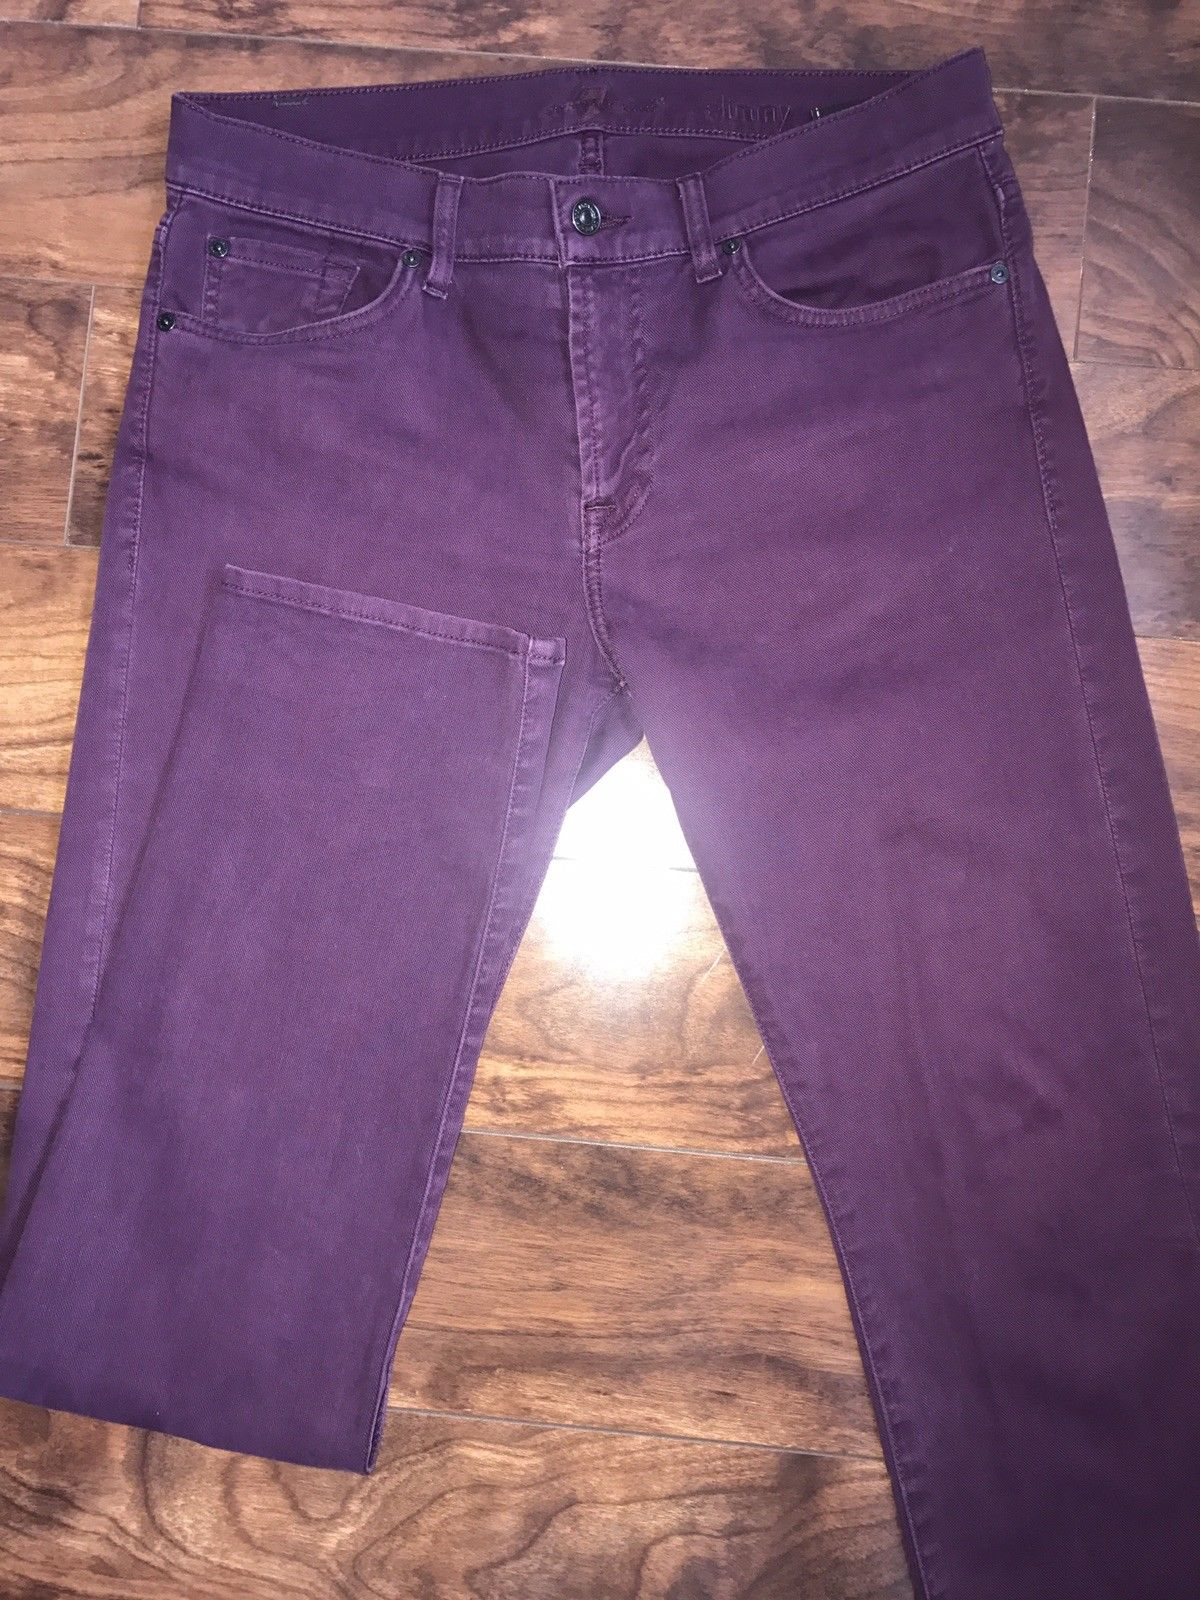 For All 7 Mankind Cotton Mens  Purple Jeans Size 32 US